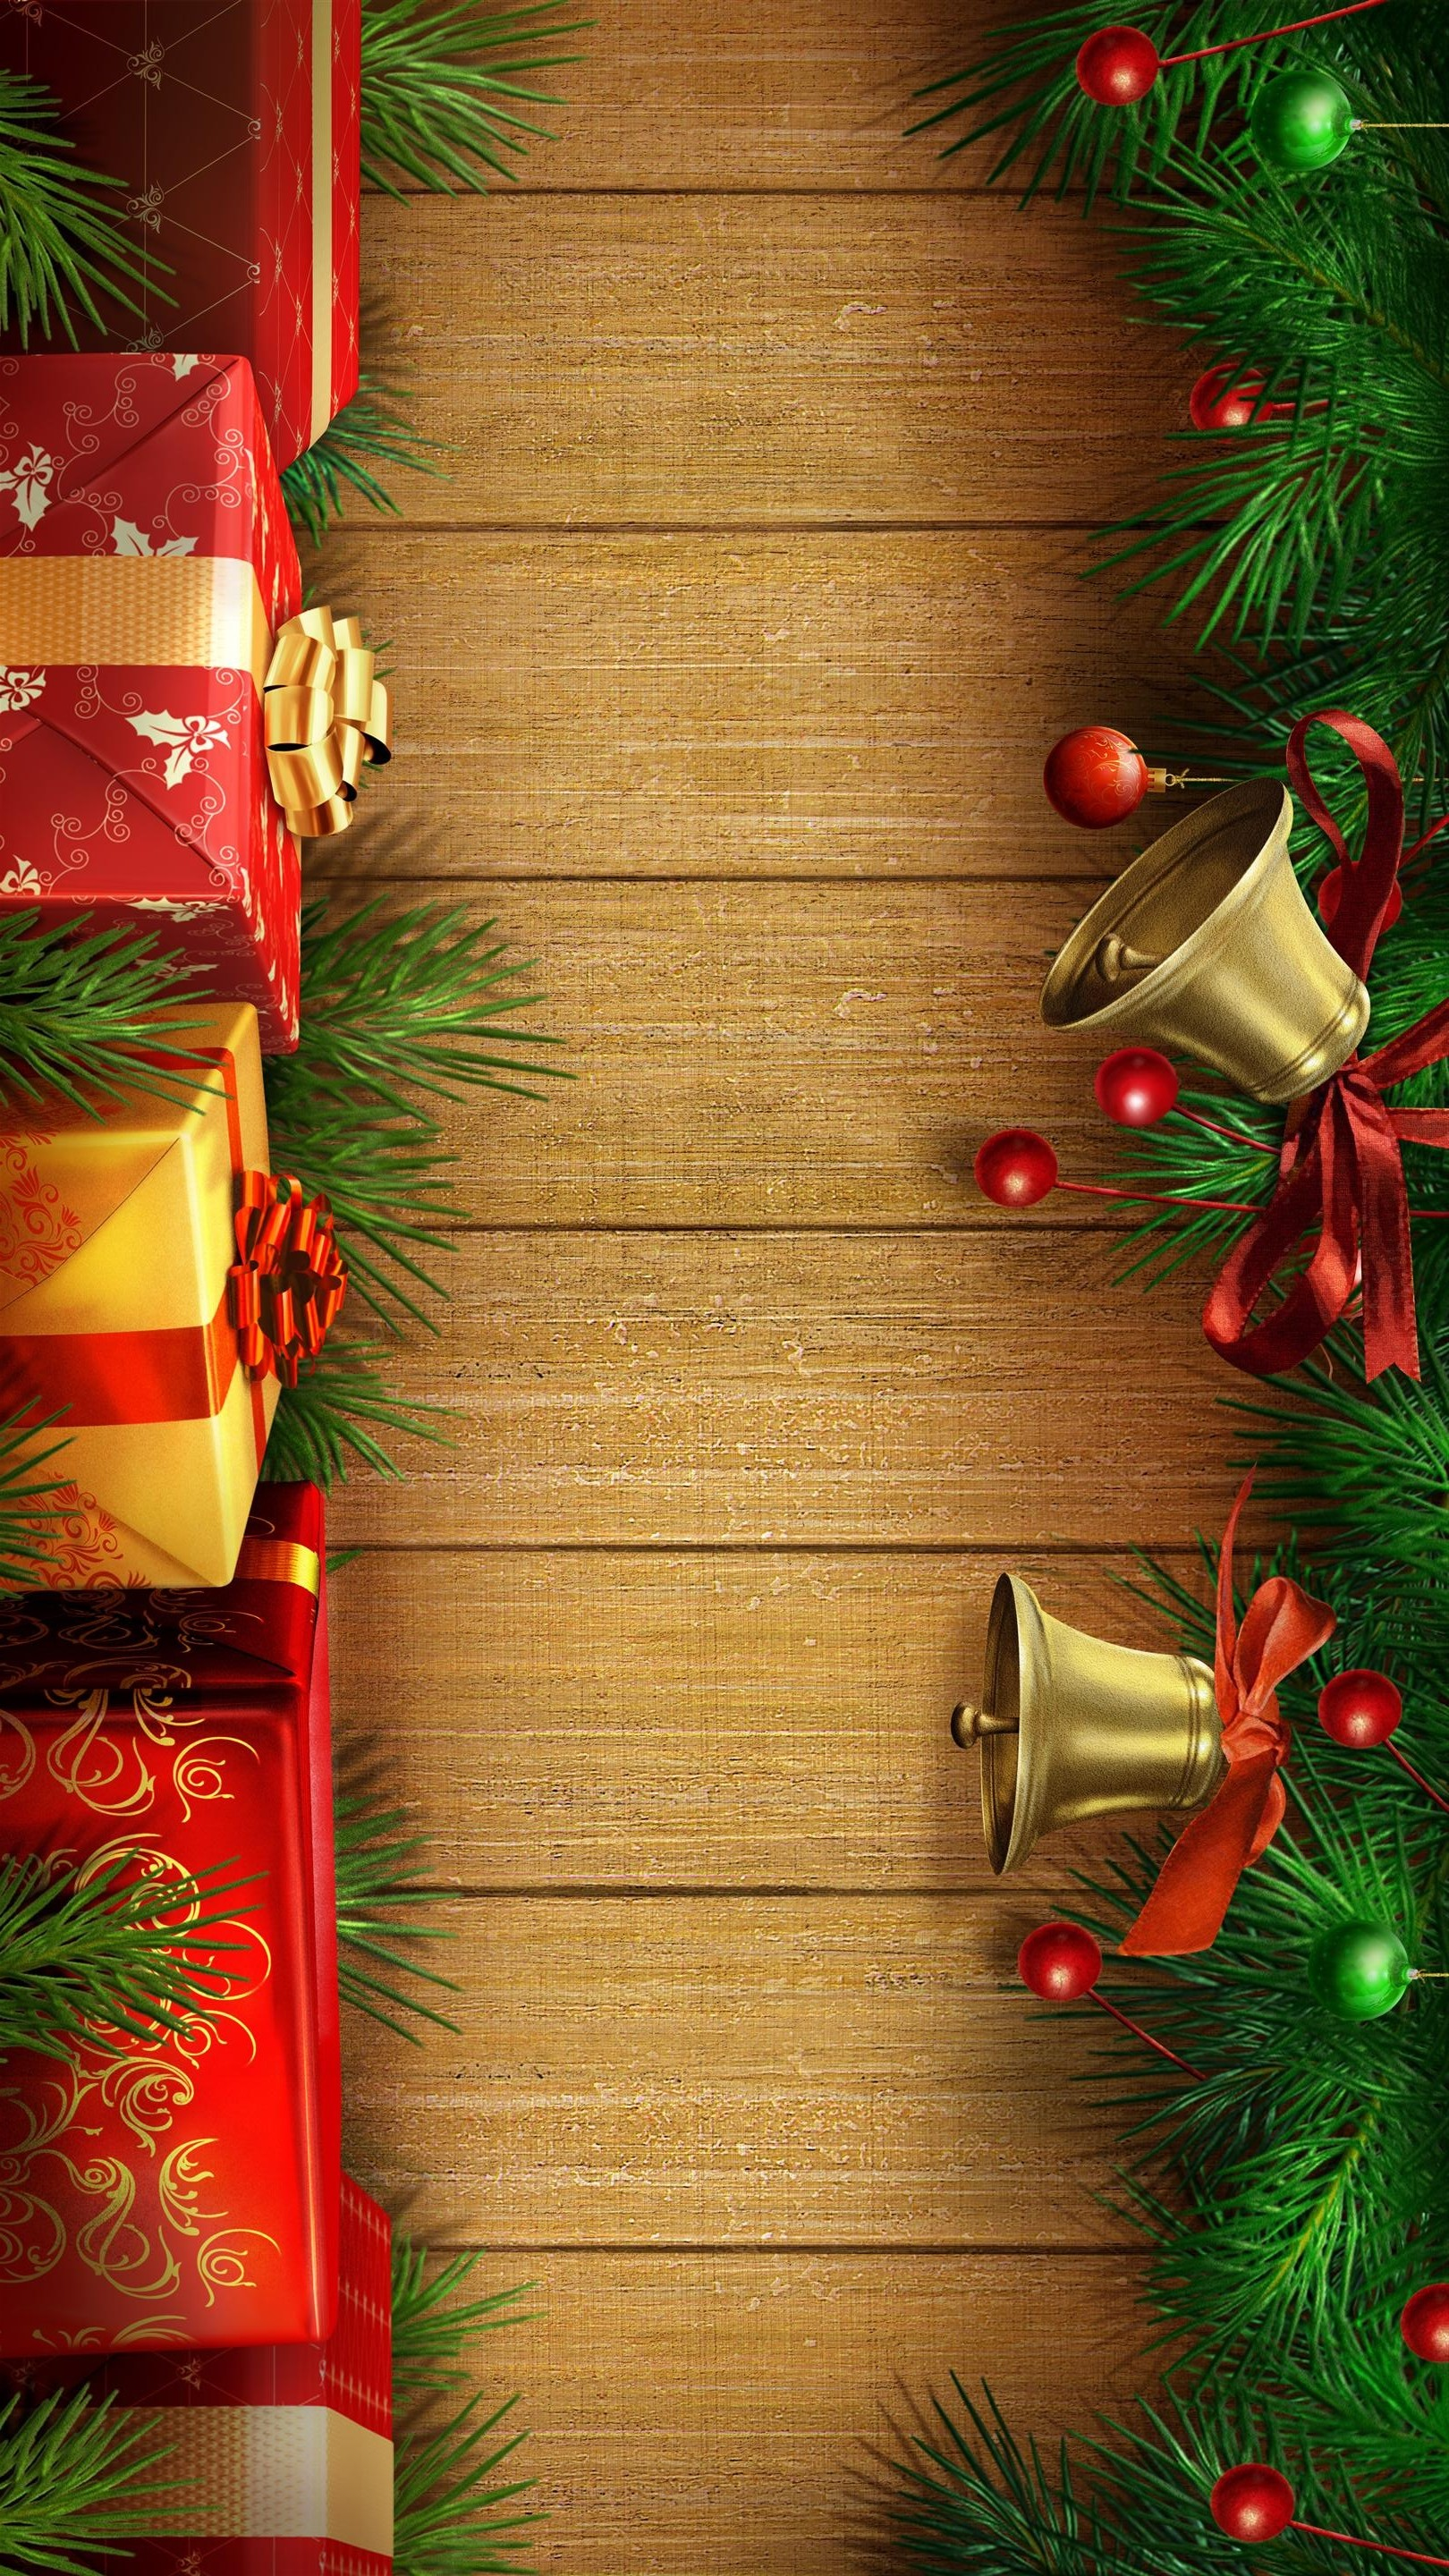 merry christmas wallpapers red free download